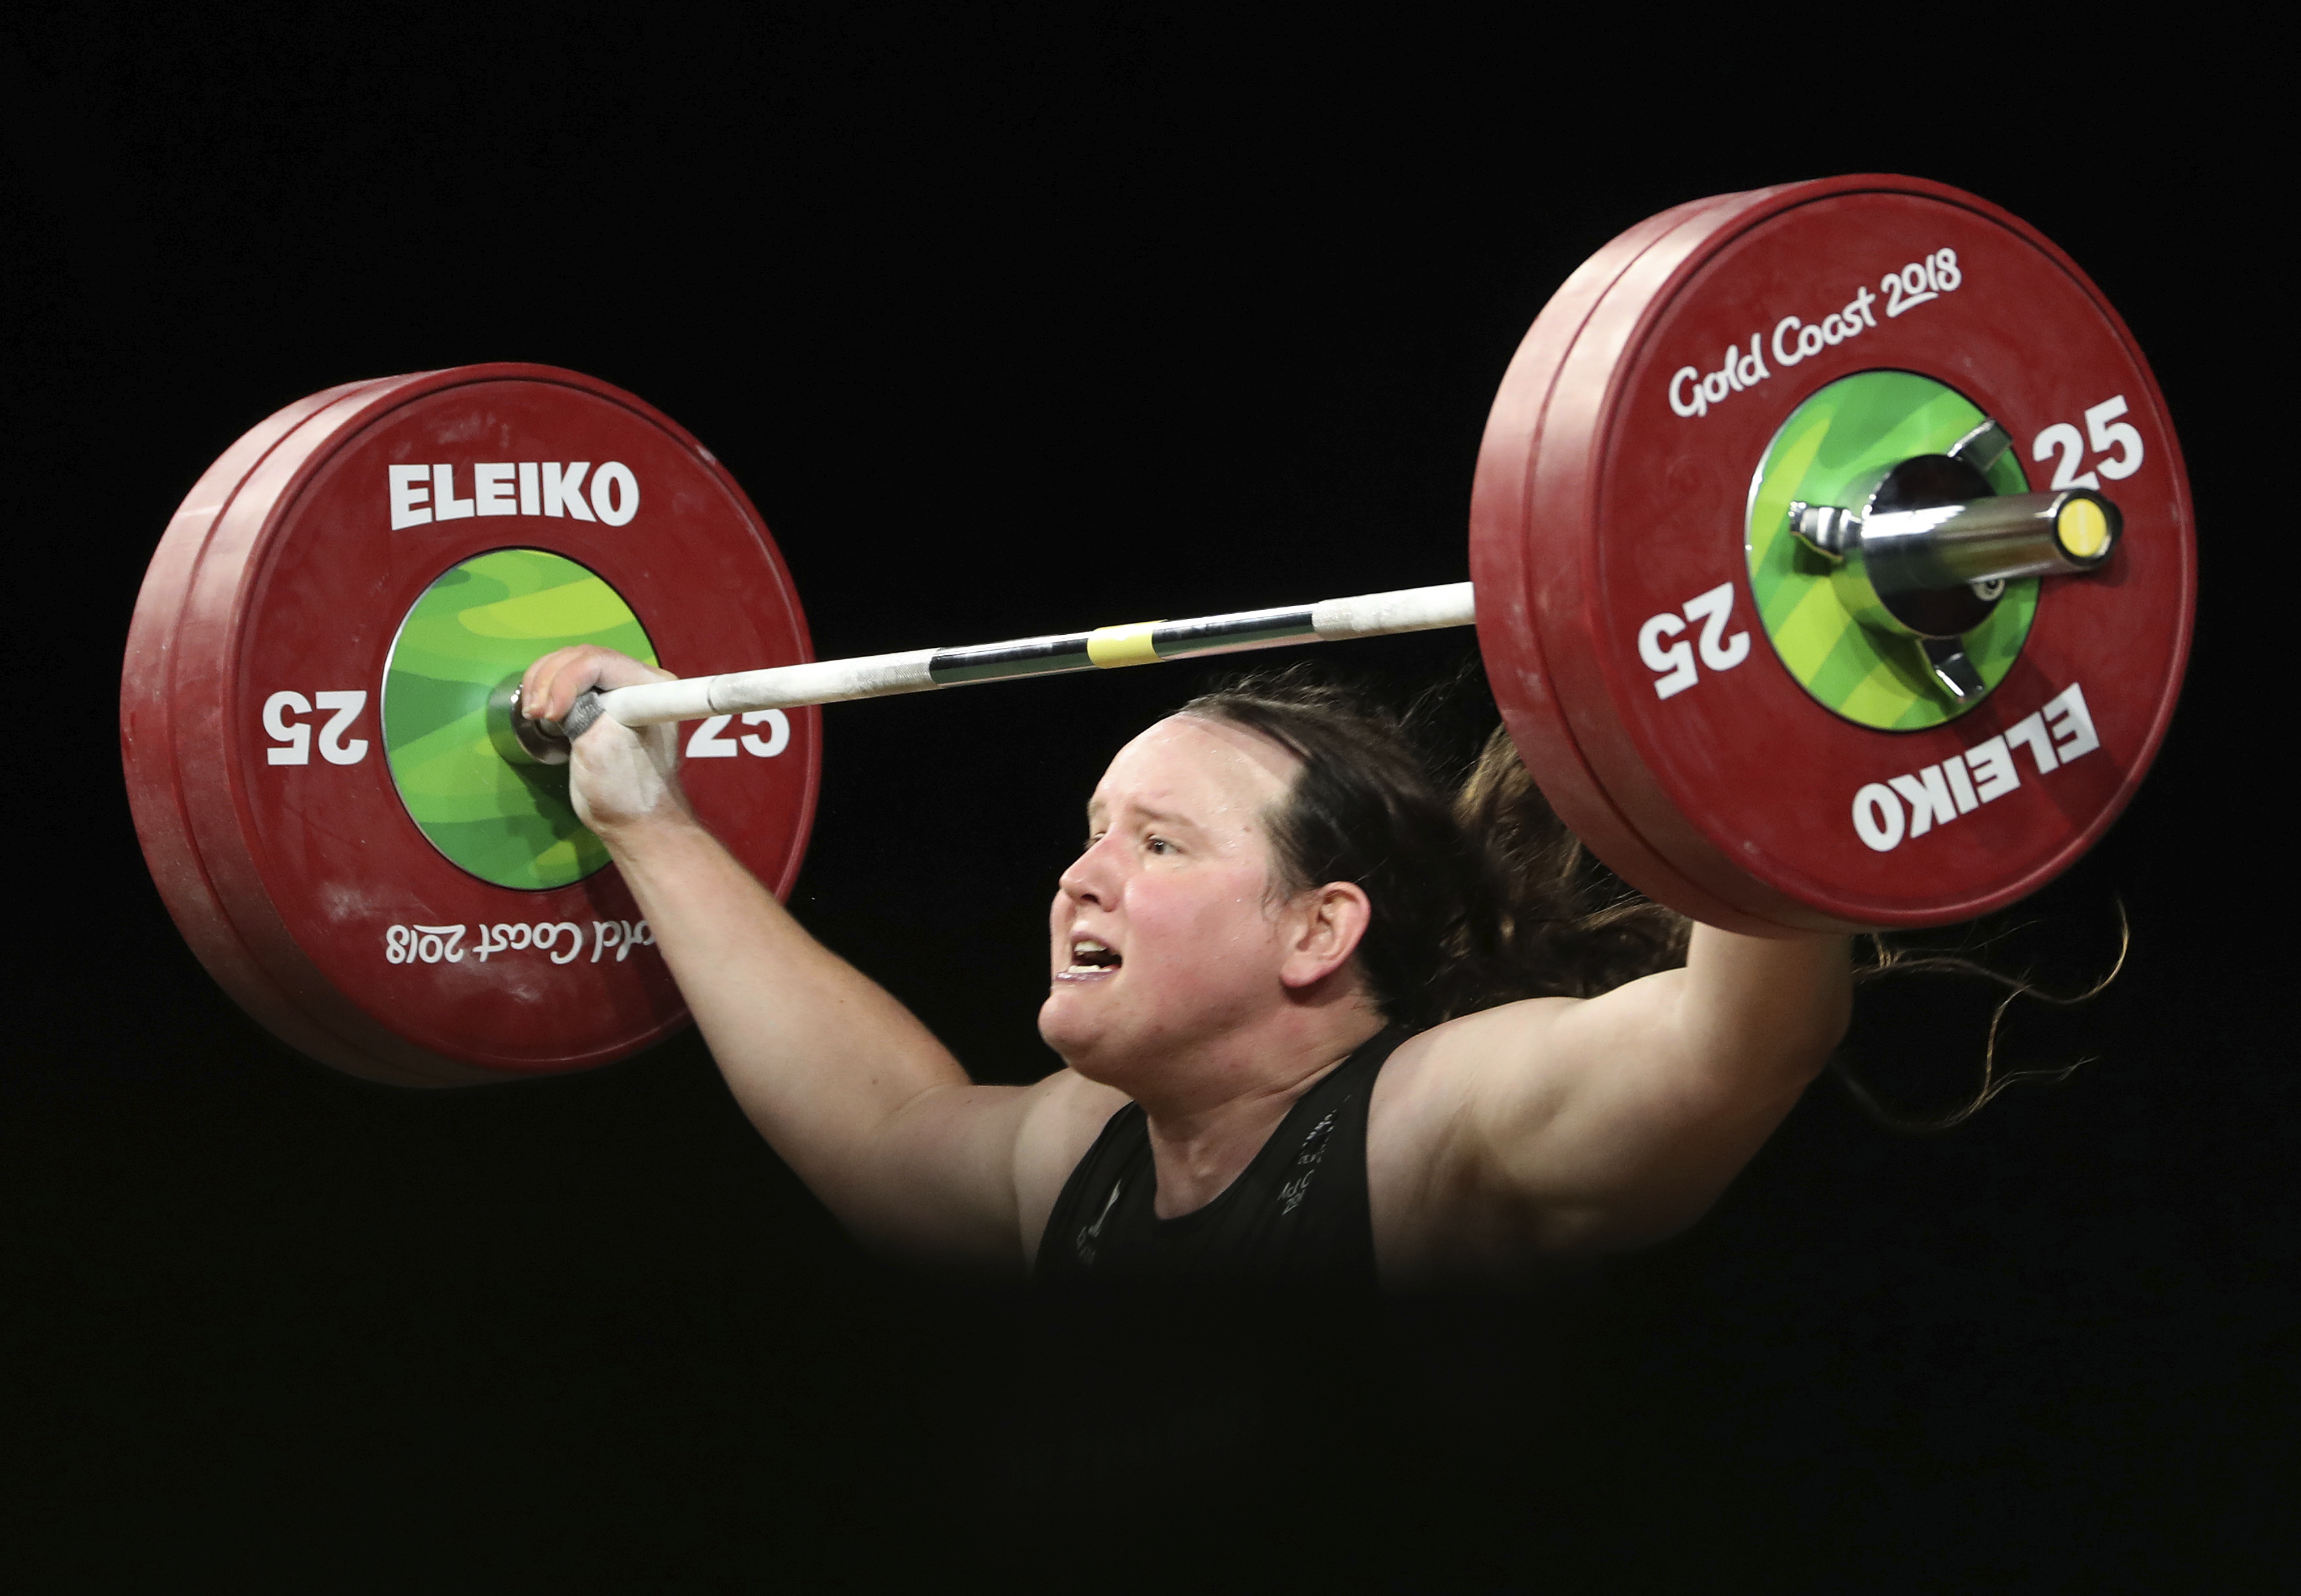 """""""The Olympic Games are a global celebration of our hopes, our ideals and our values. I commend the IOC for its commitment to making sport inclusive and accessible,""""  Transgender weightlifter Laurel Hubbard said."""